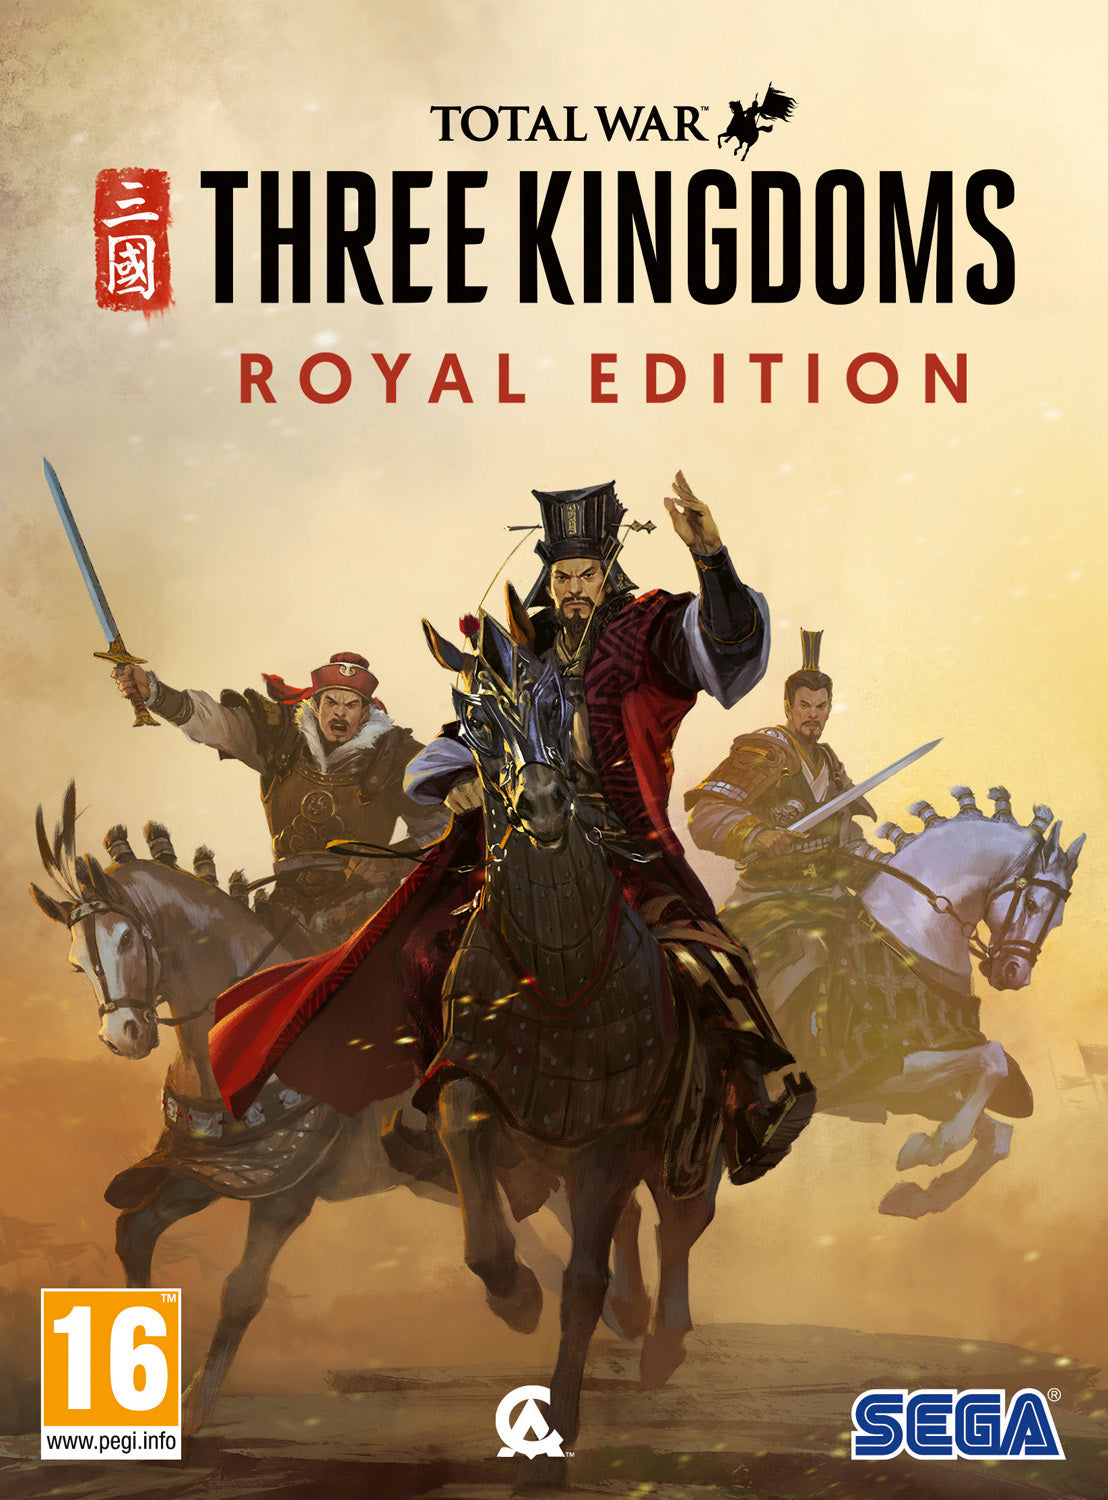 Total War: THREE KINGDOMS Royal Edition